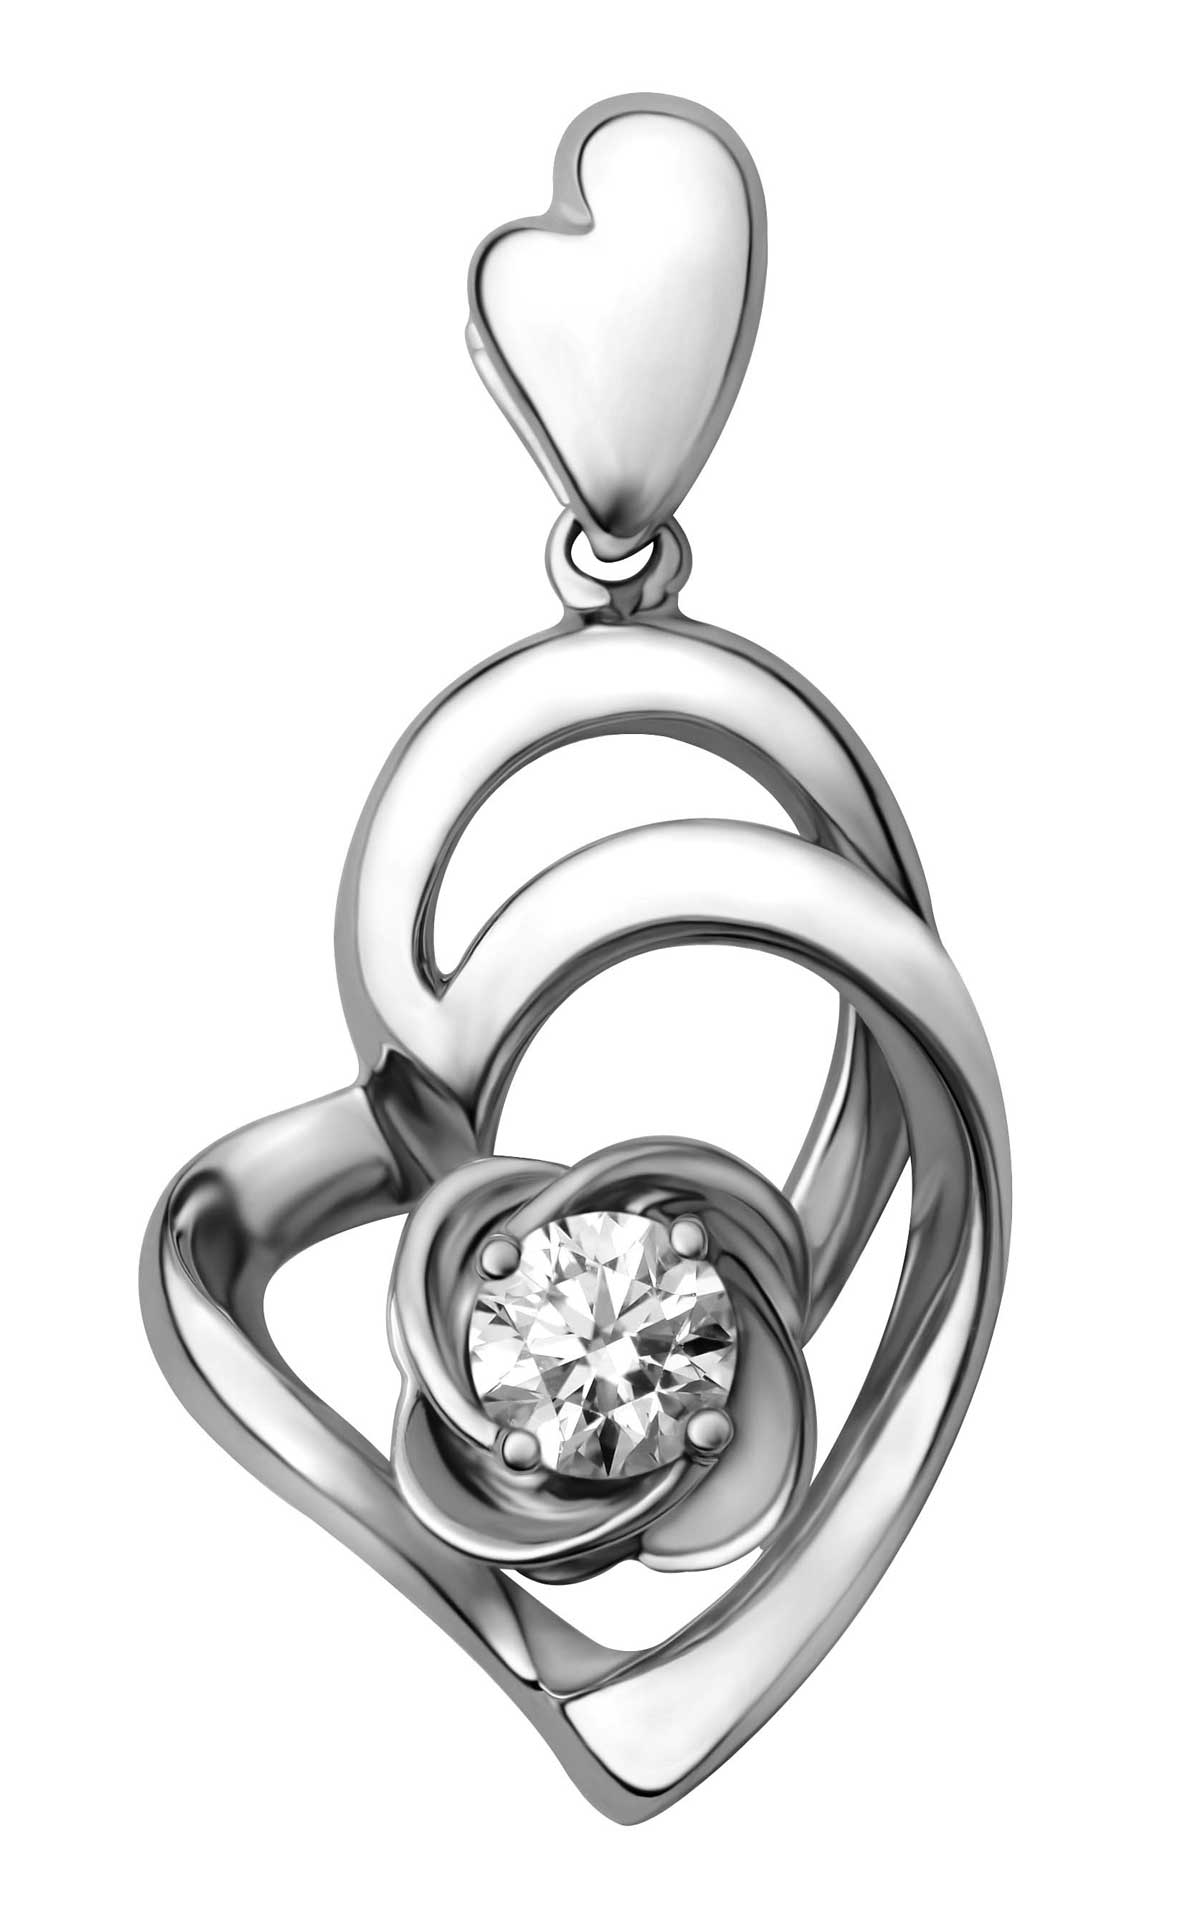 'Memories' limited edition diamond pendant in 18K white gold. (Photo: Le Lumiere)